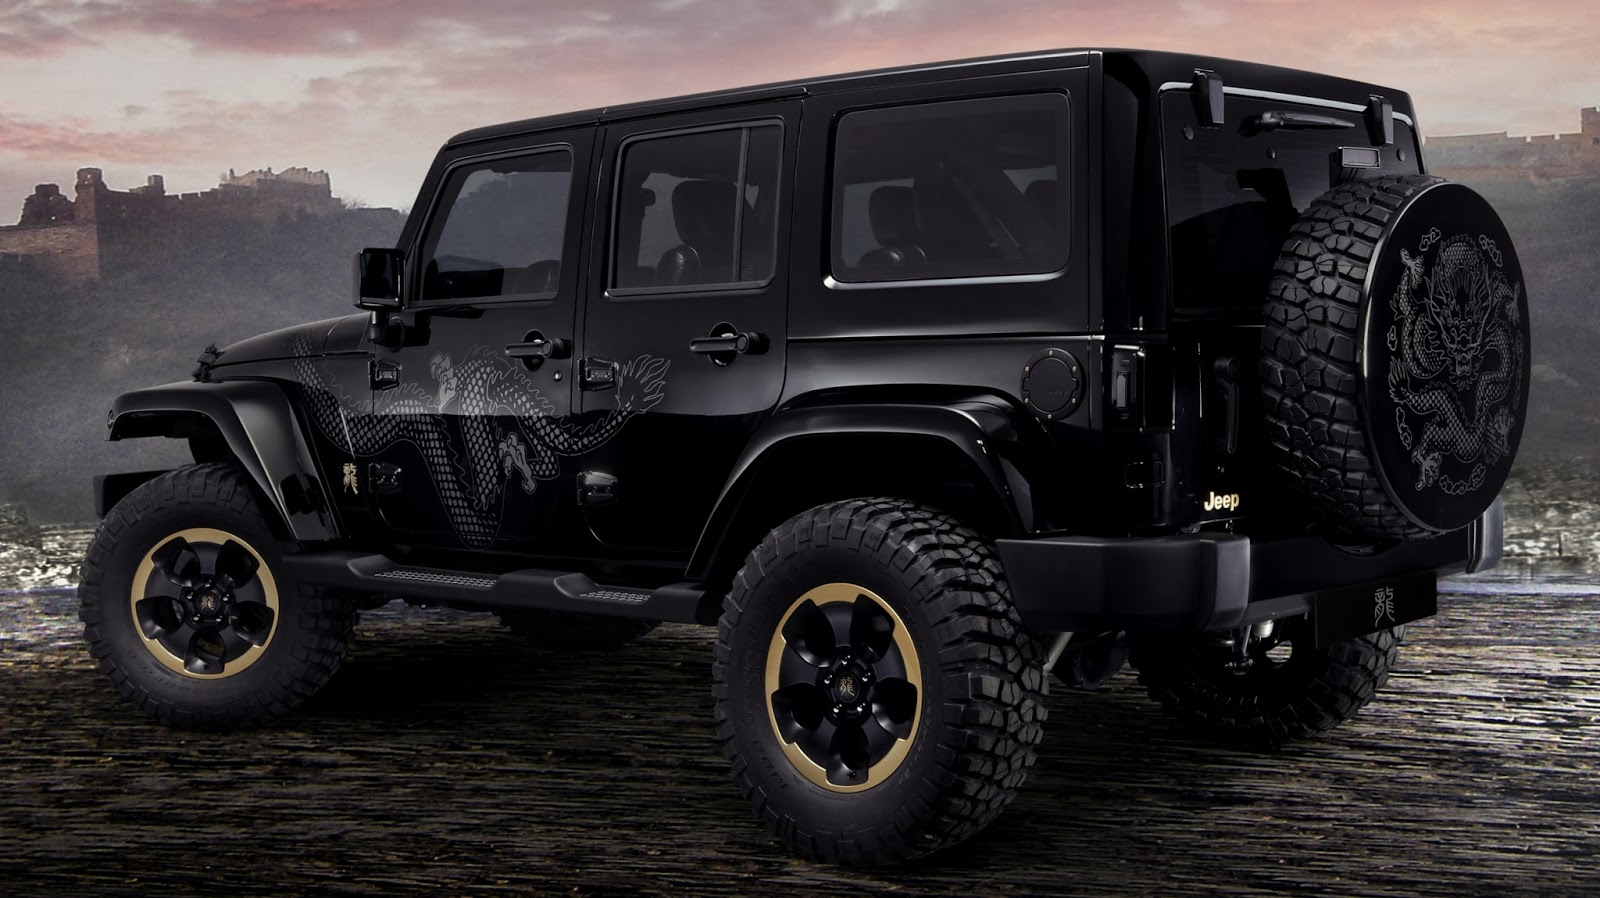 When ate the 2014 jeep wrangeler coming put autos weblog